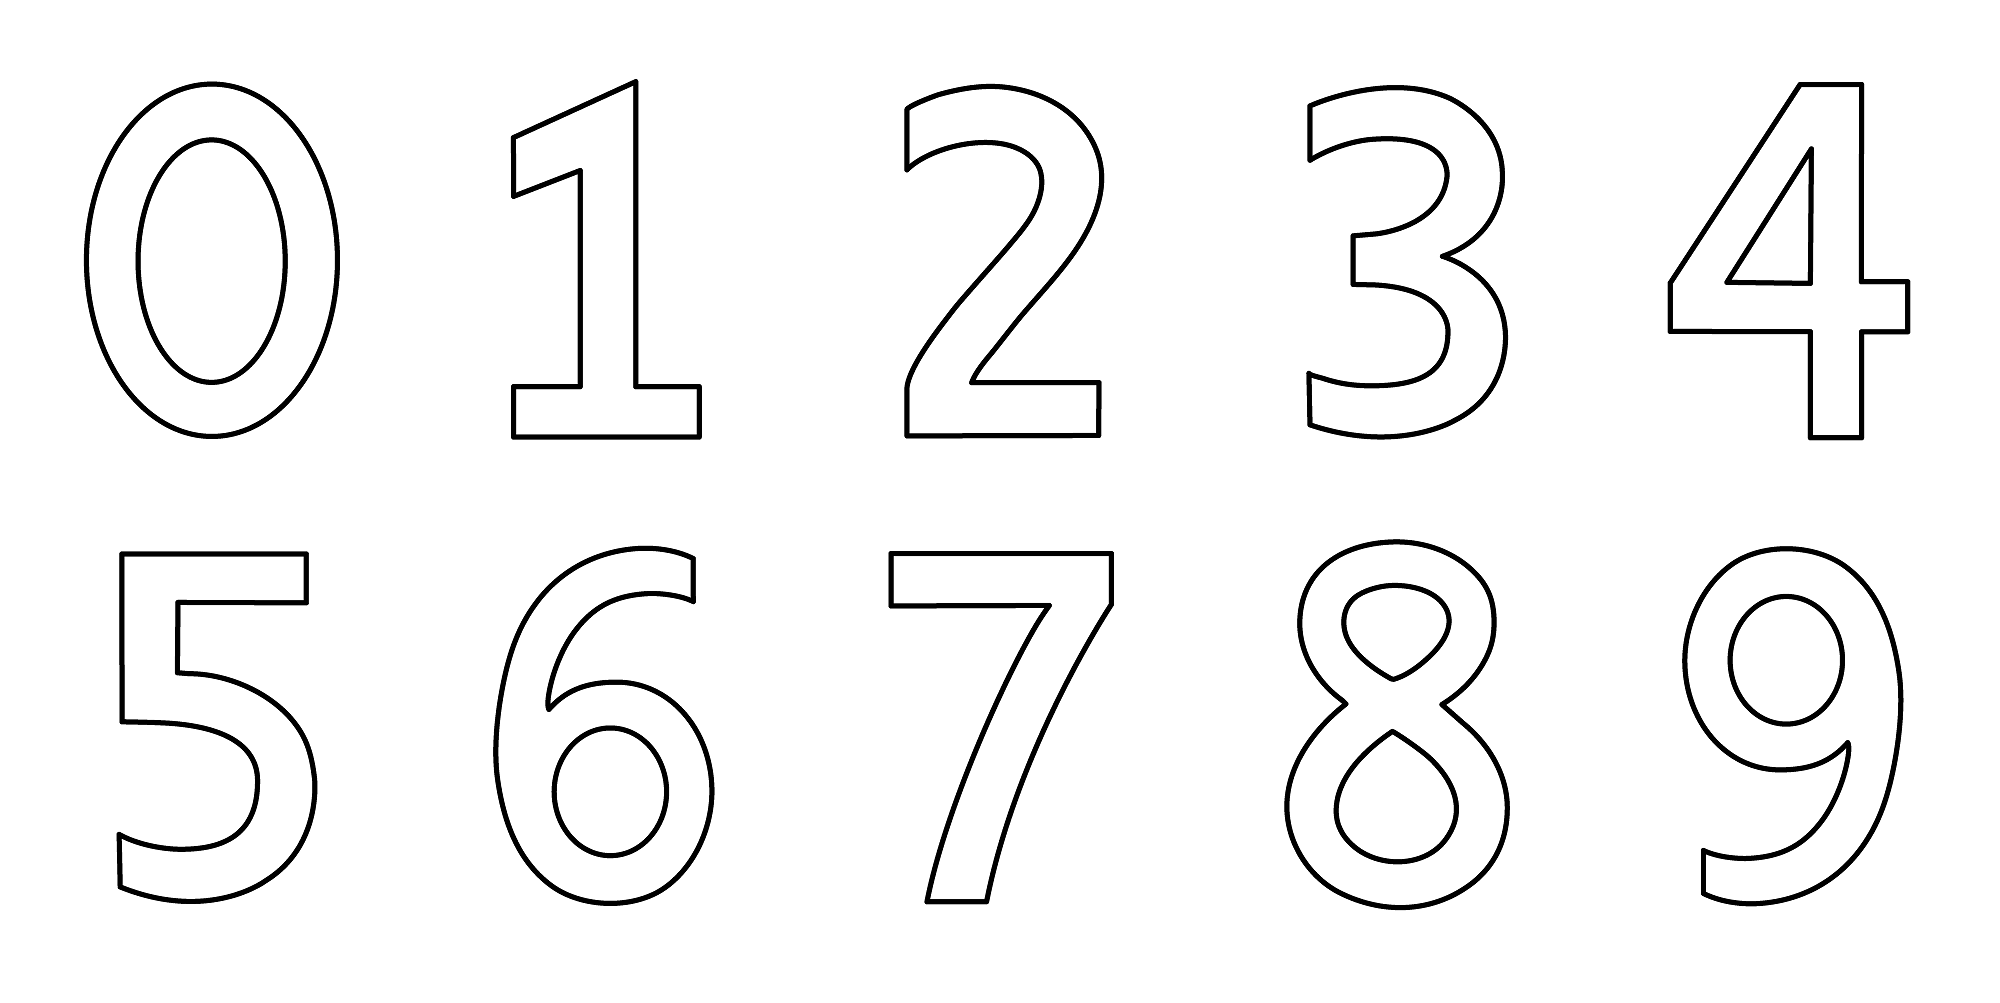 Number Color Pages for Kids Activity